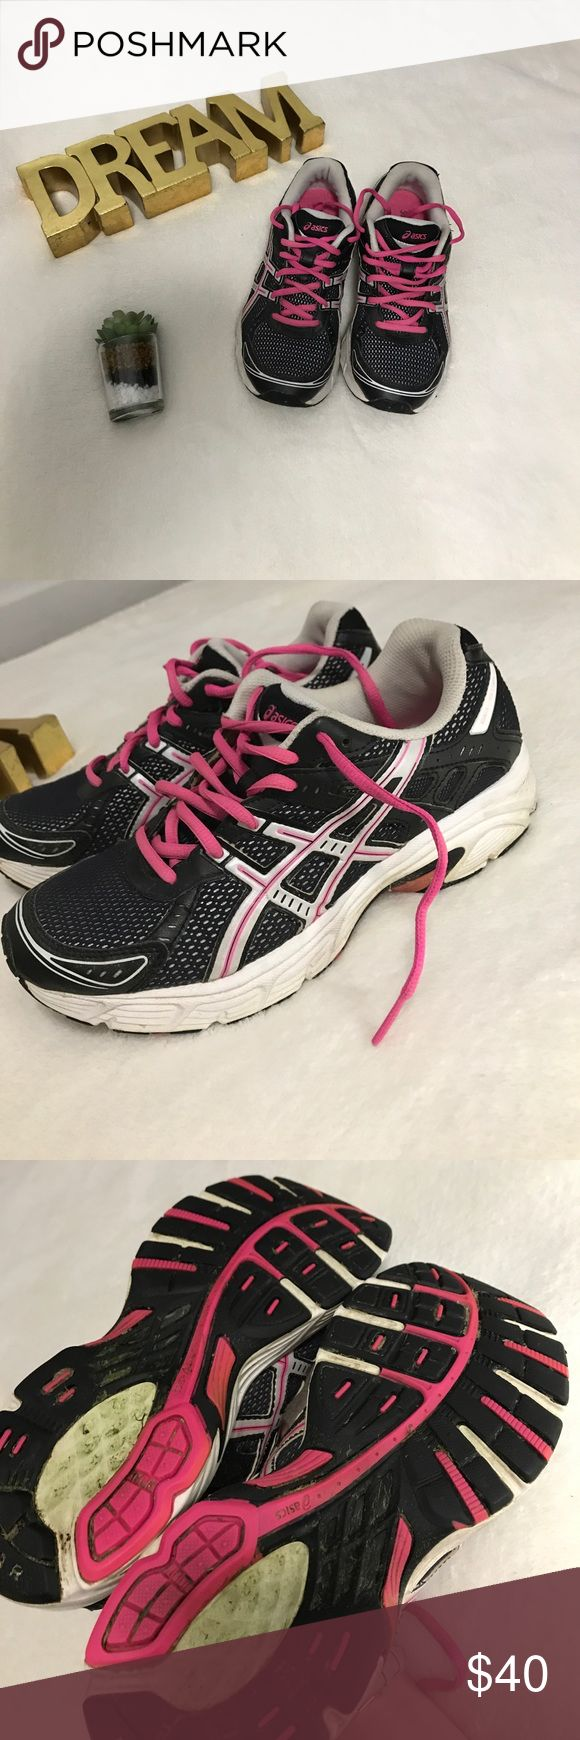 Pink &a Black Asics In good condition. Only wear is inside the shoe (inserts) and he bottom of the shoe Asics Shoes